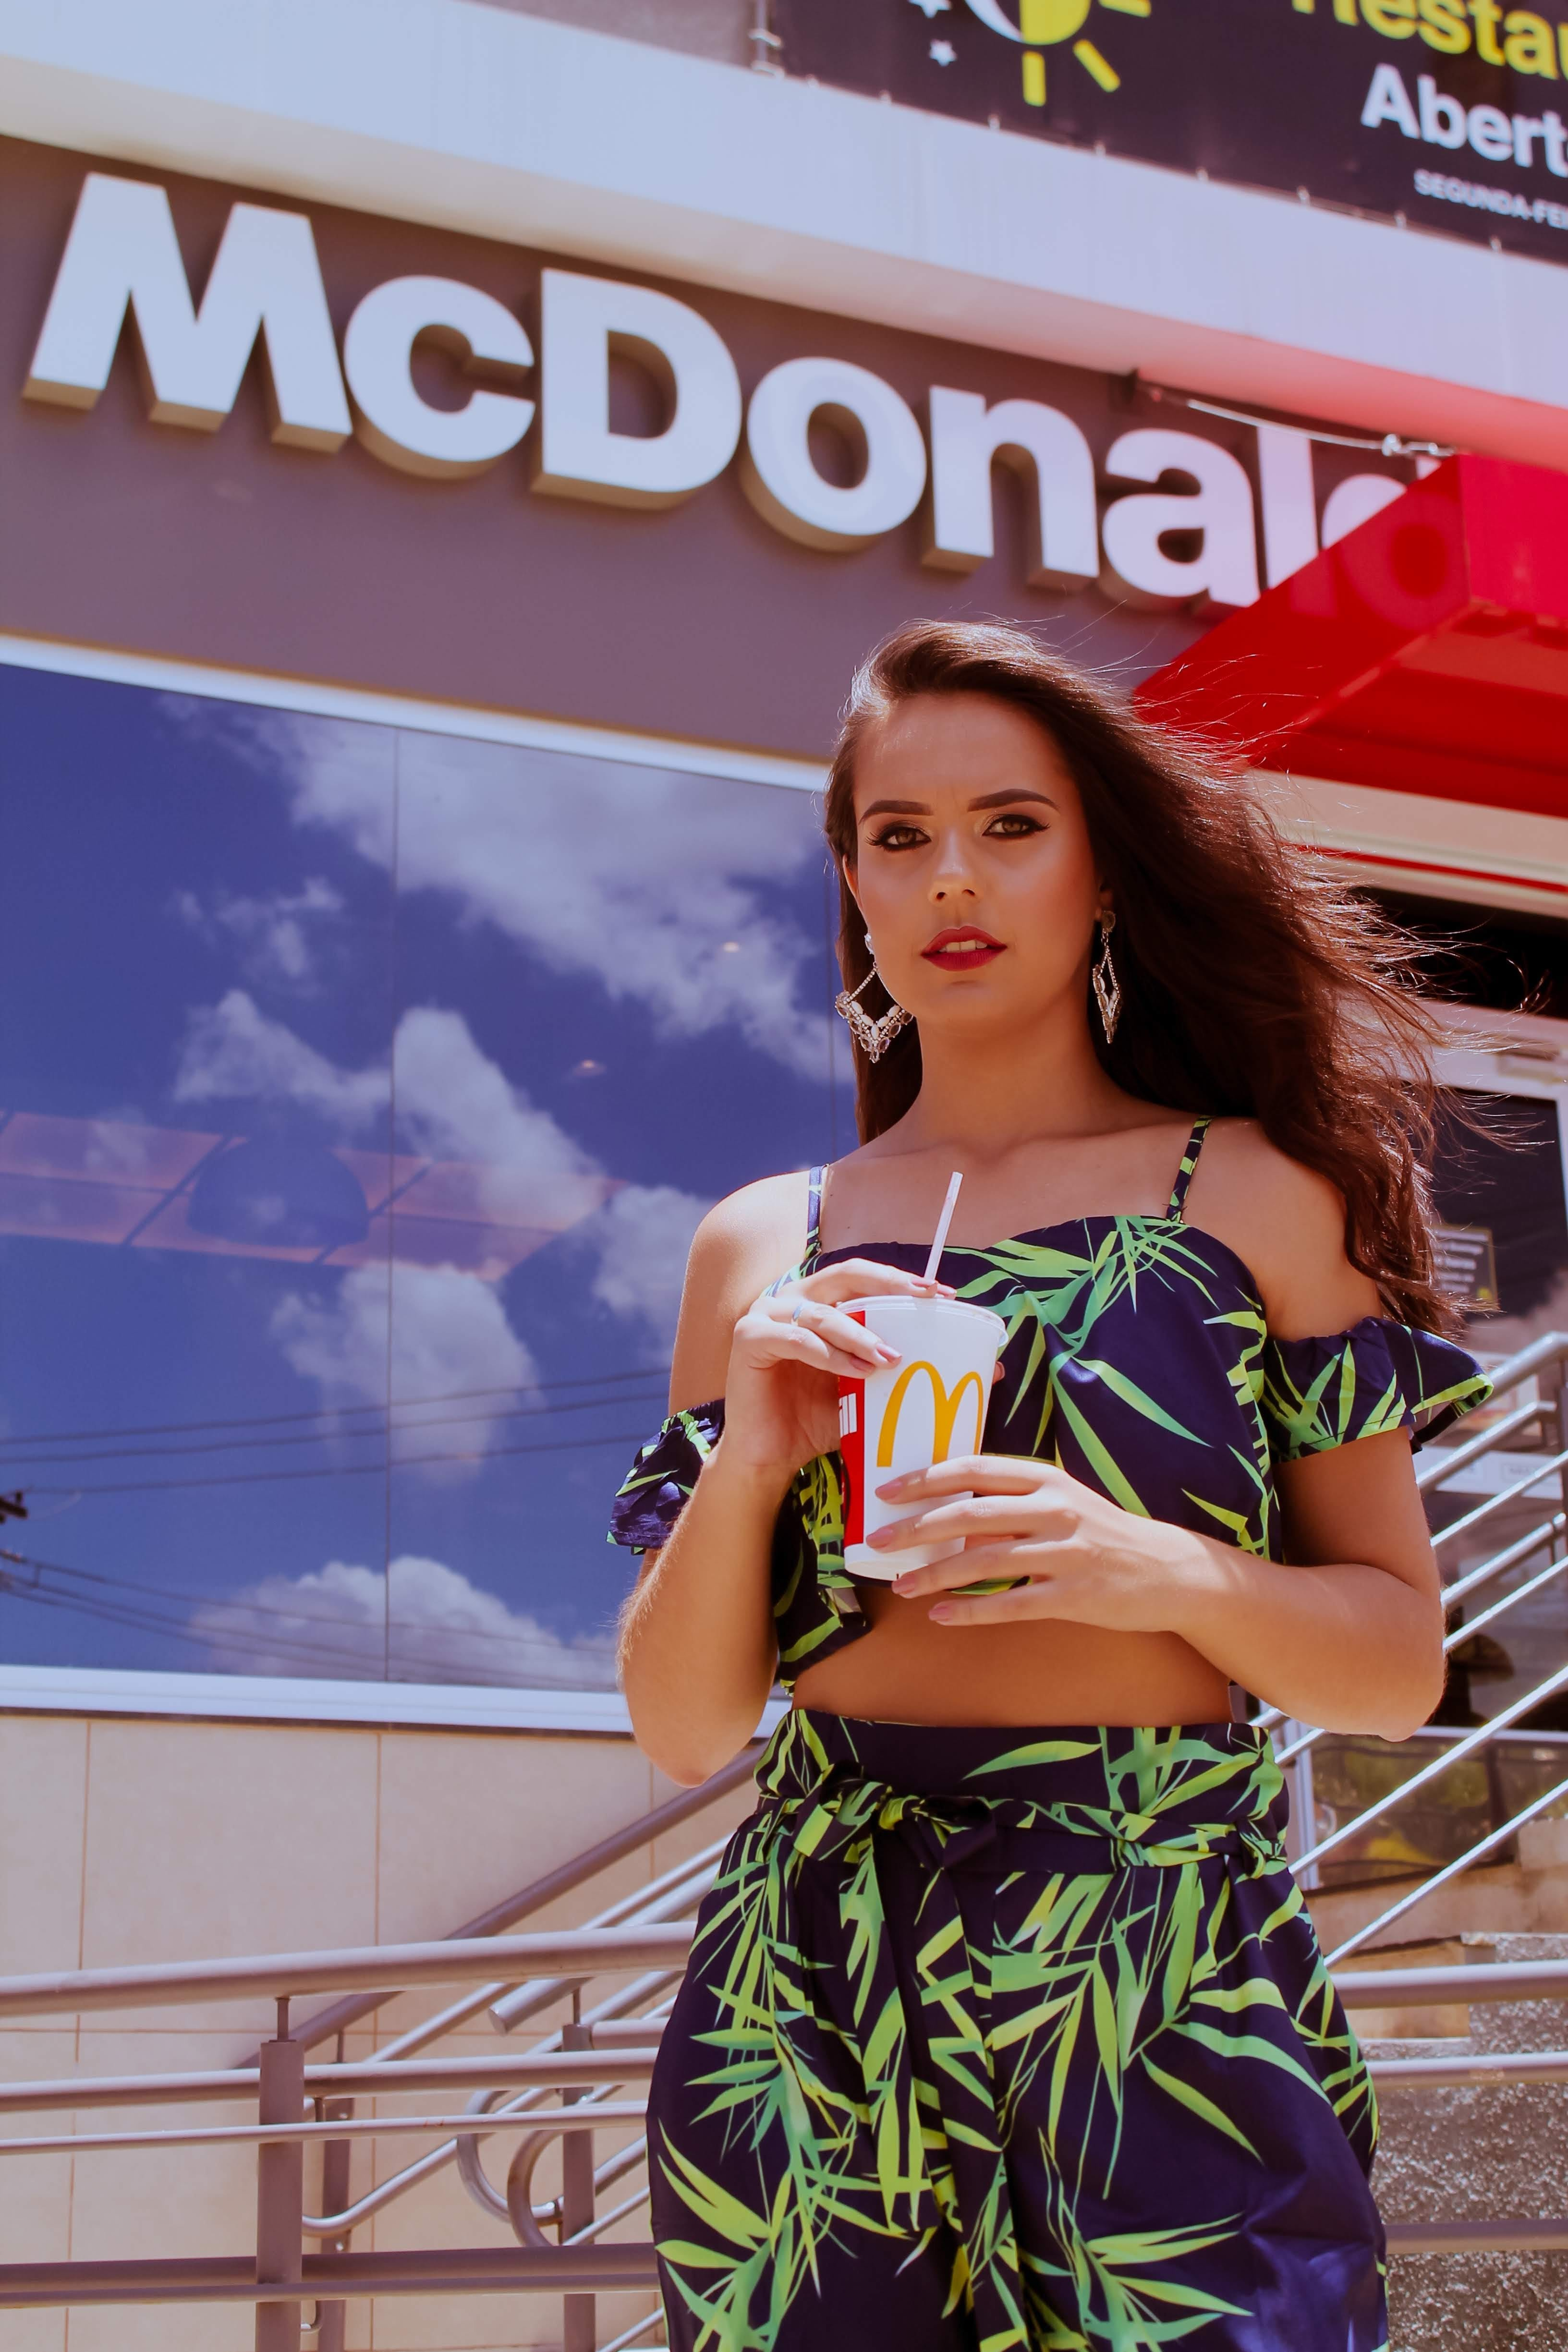 Photo of Woman Holding Mcdonald's Plastic Cup